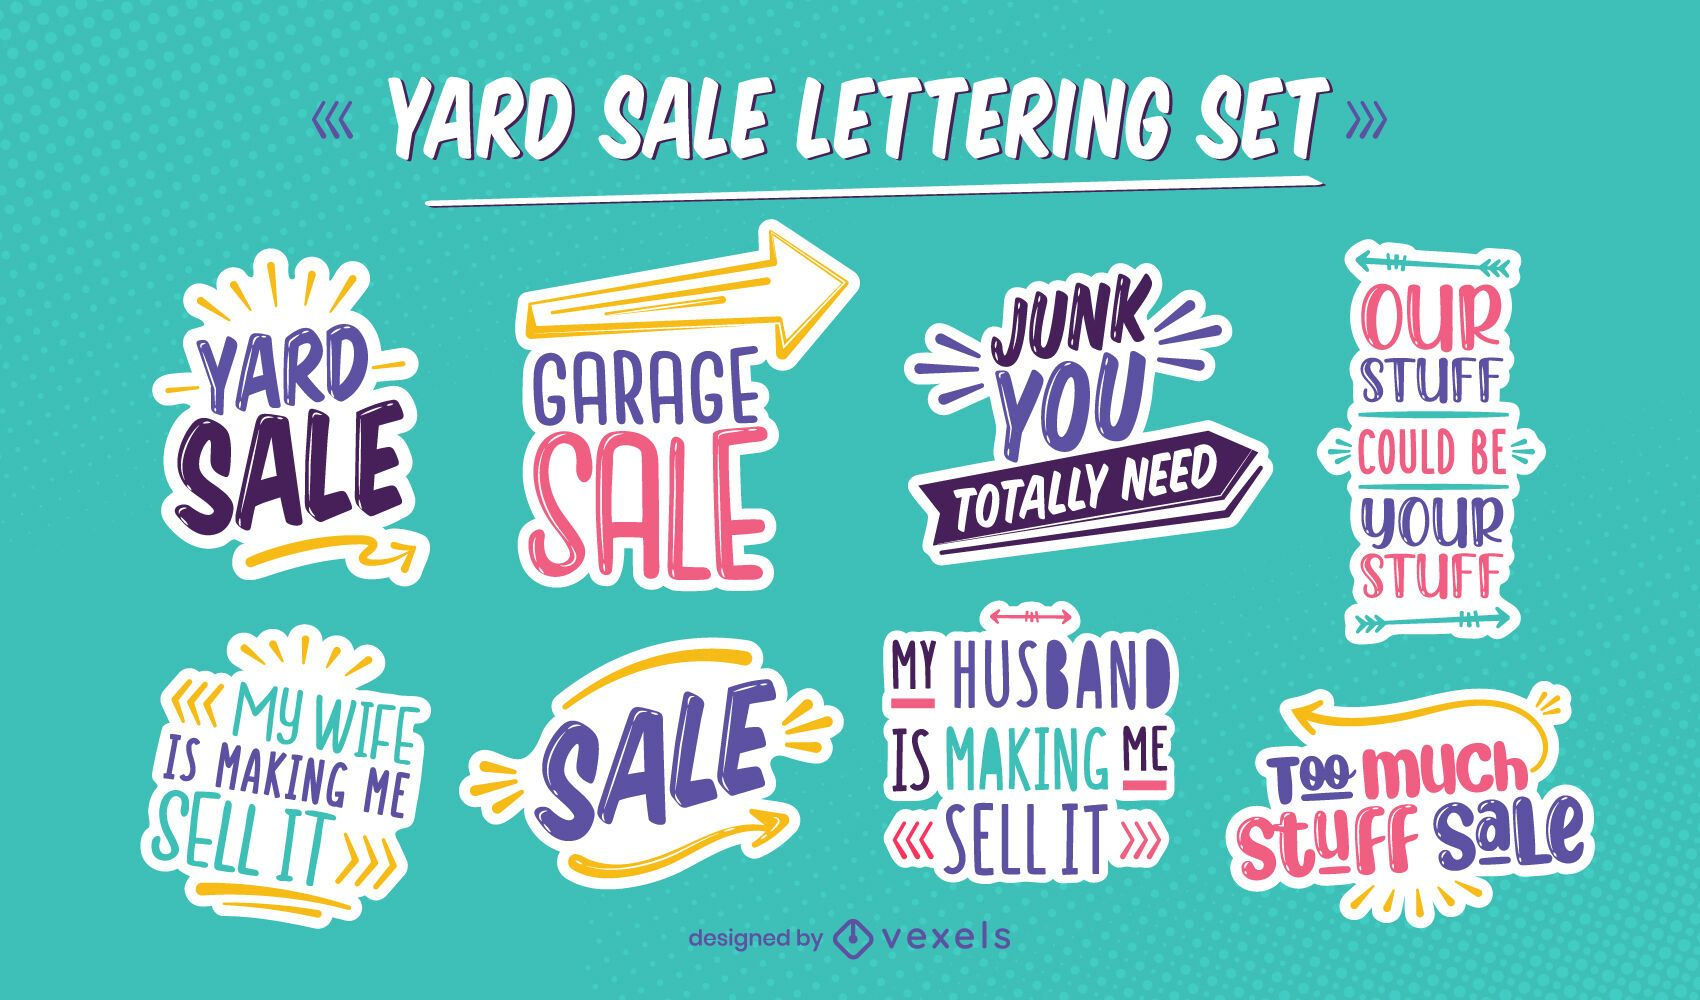 Yard sale offer quote lettering set